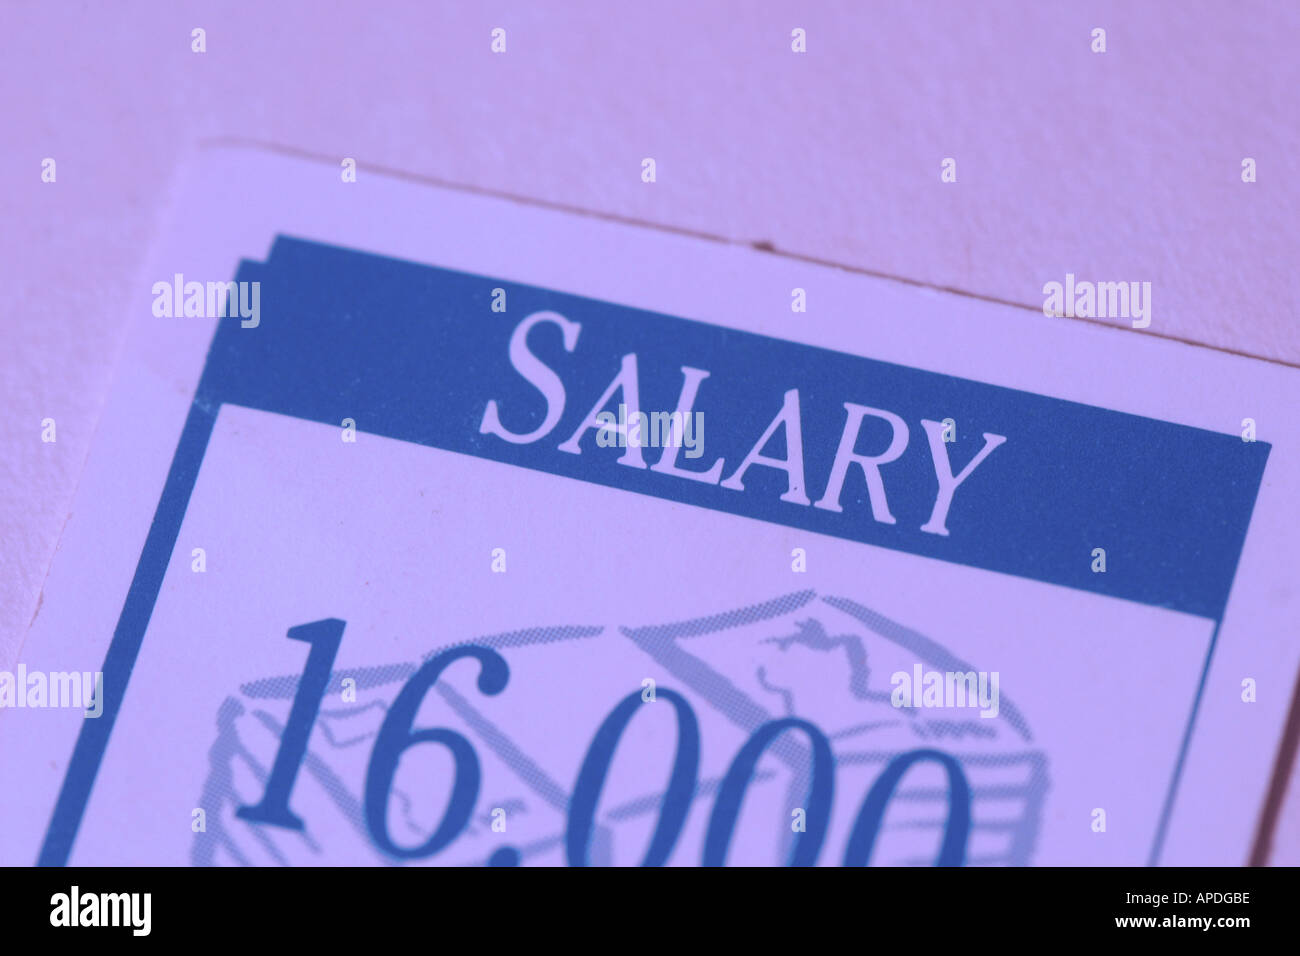 a card about salary from a game - Stock Image